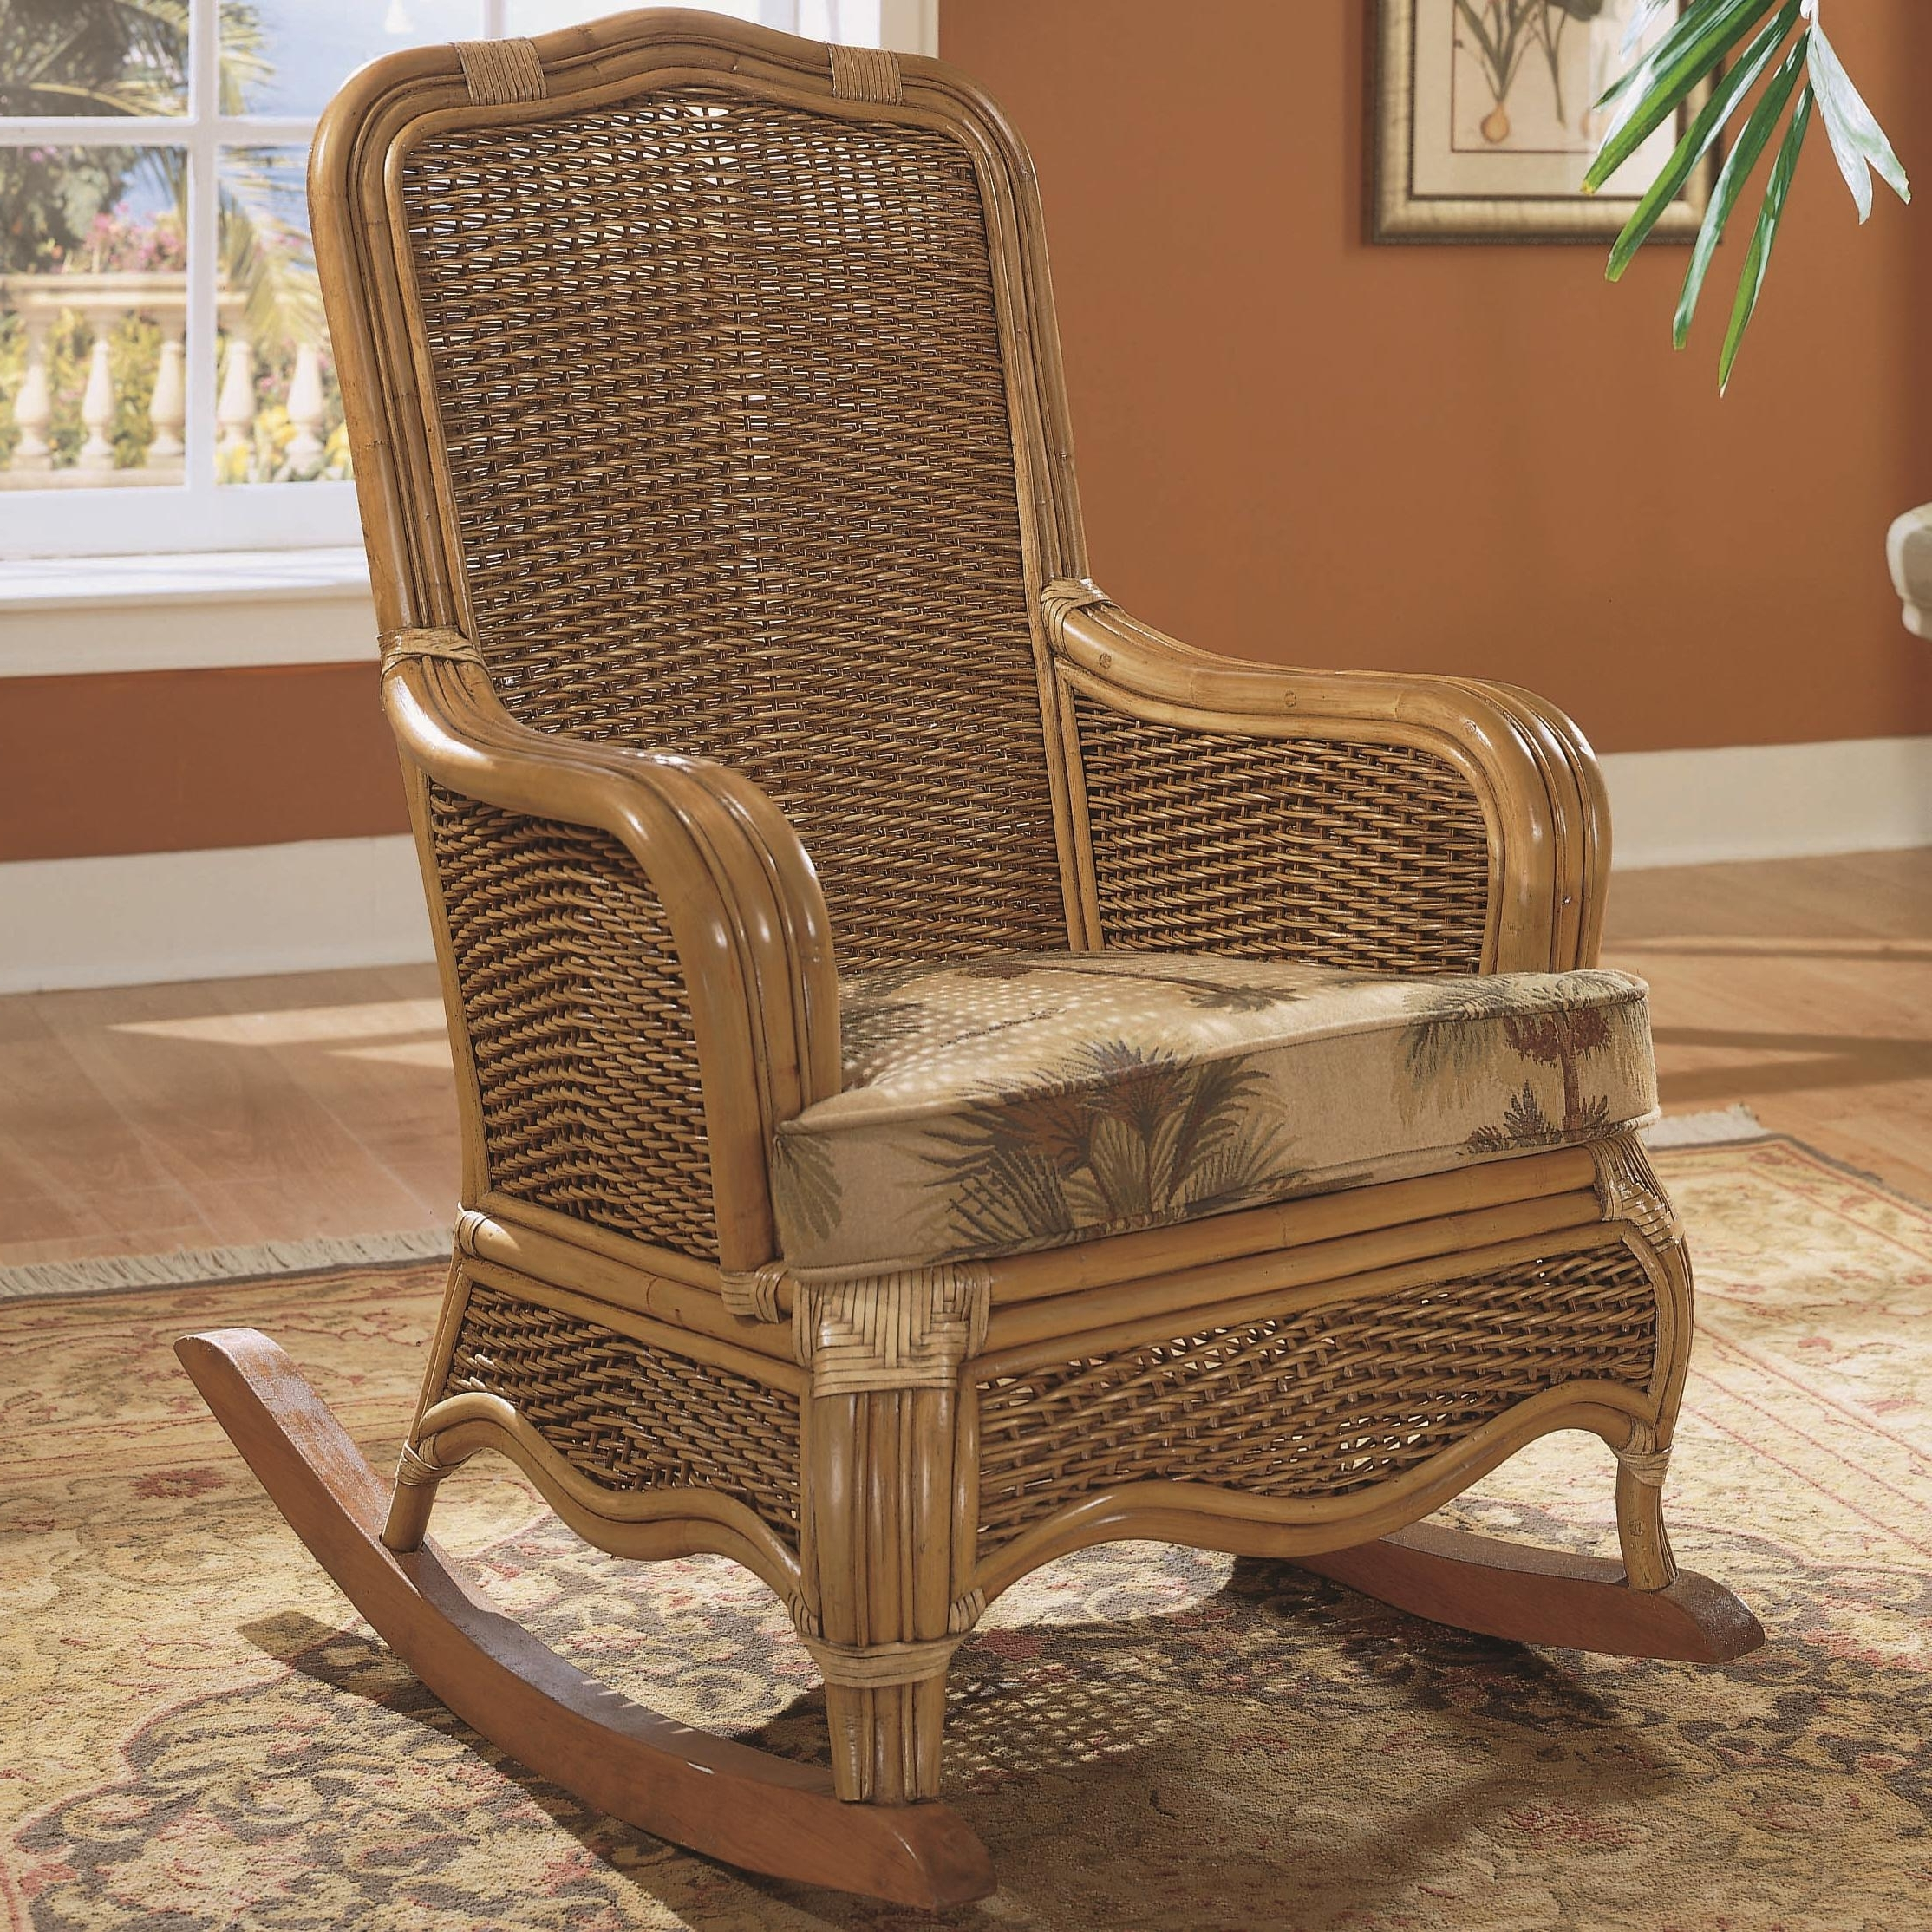 Braxton Culler Shorewood Tropical Rattan Rocking Chair With Loose Throughout Popular Wicker Rocking Chairs With Cushions (View 2 of 15)